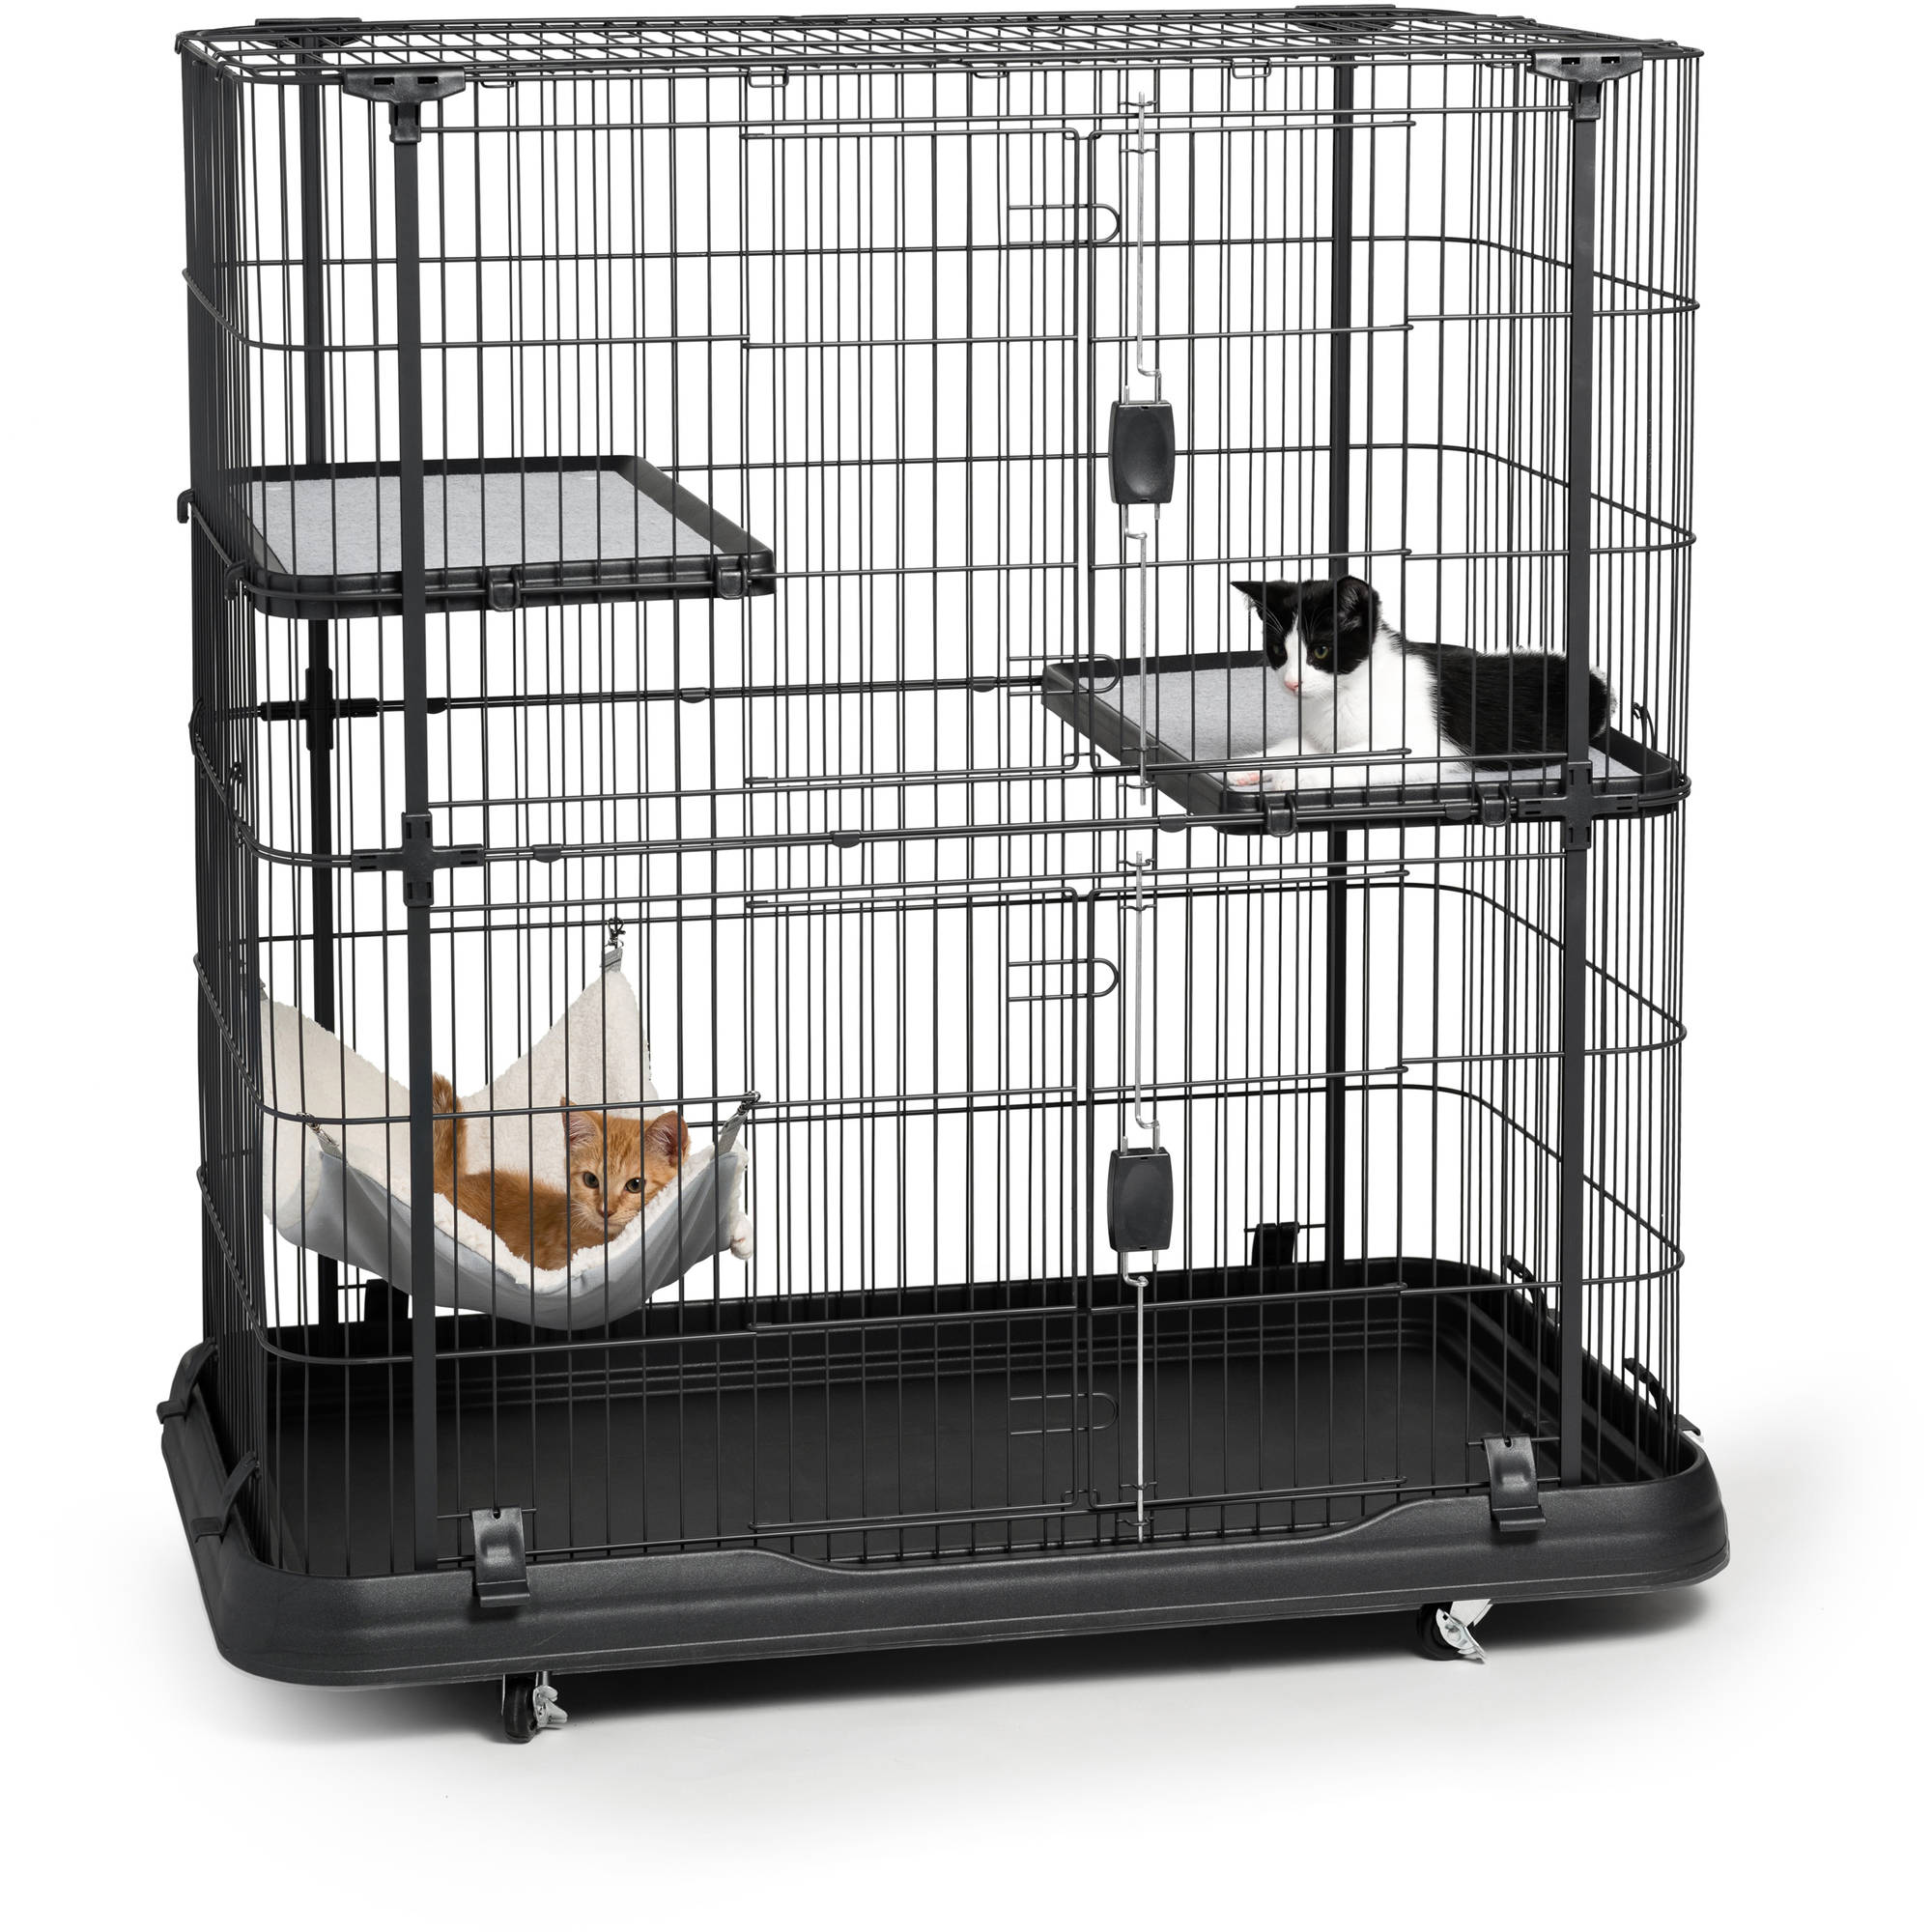 Prevue Pet Products Deluxe Cat Home with 3 Levels, 7501